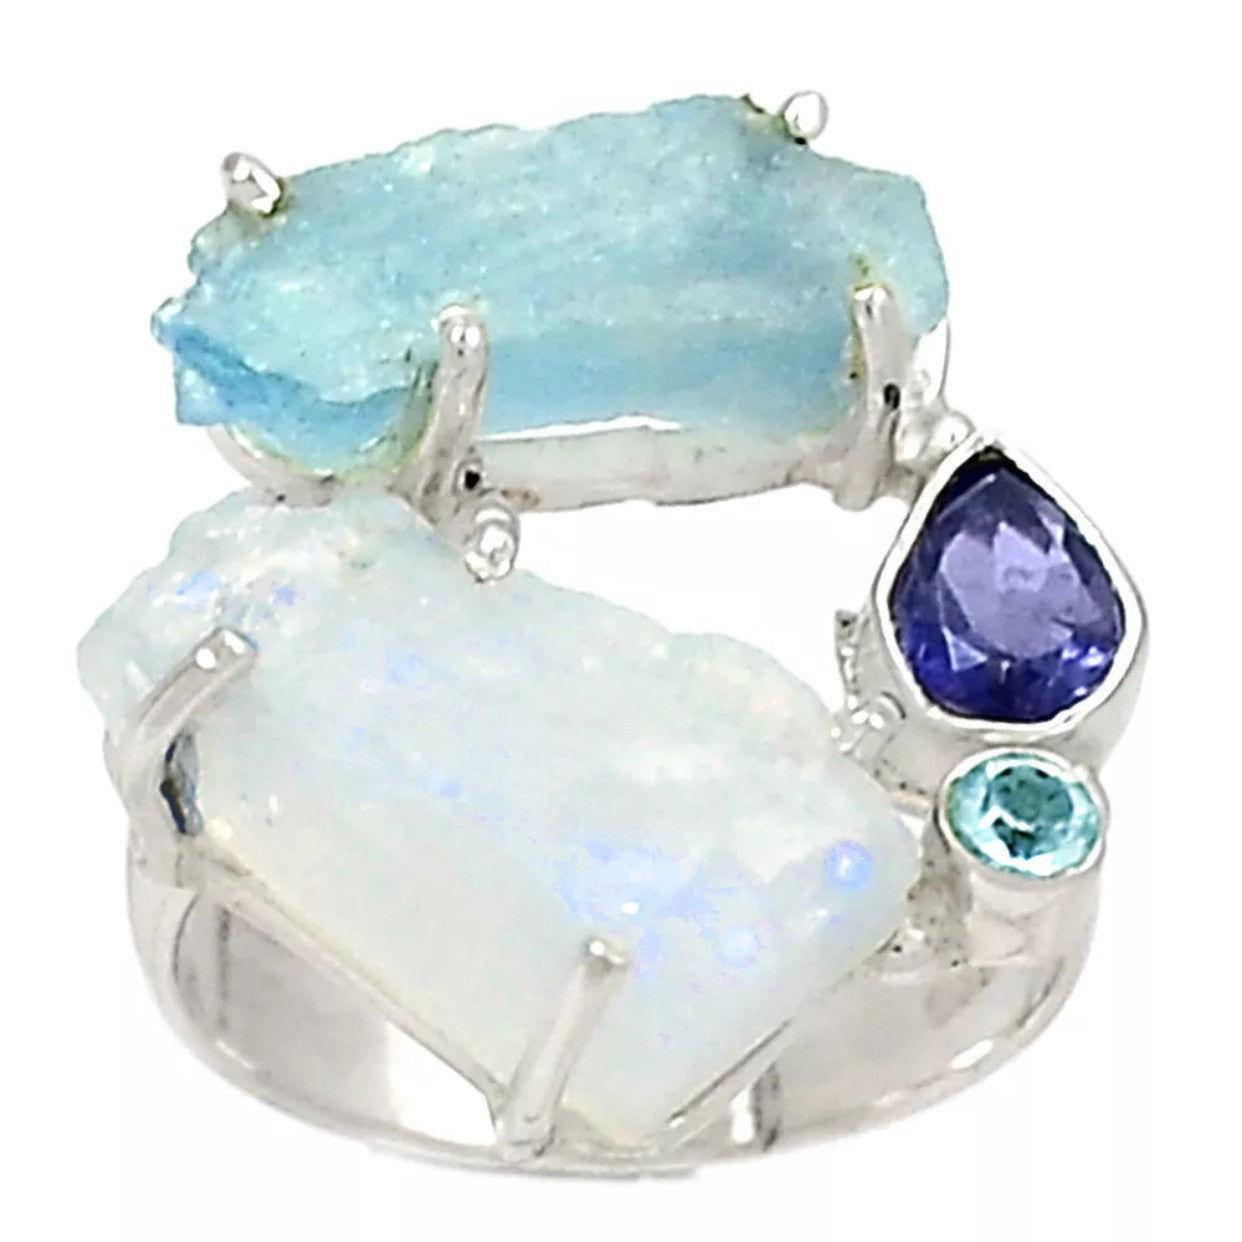 Moonstone & Aquamarine Rough Multi-Gemstone Sterling Silver Ring - Keja Designs Jewelry